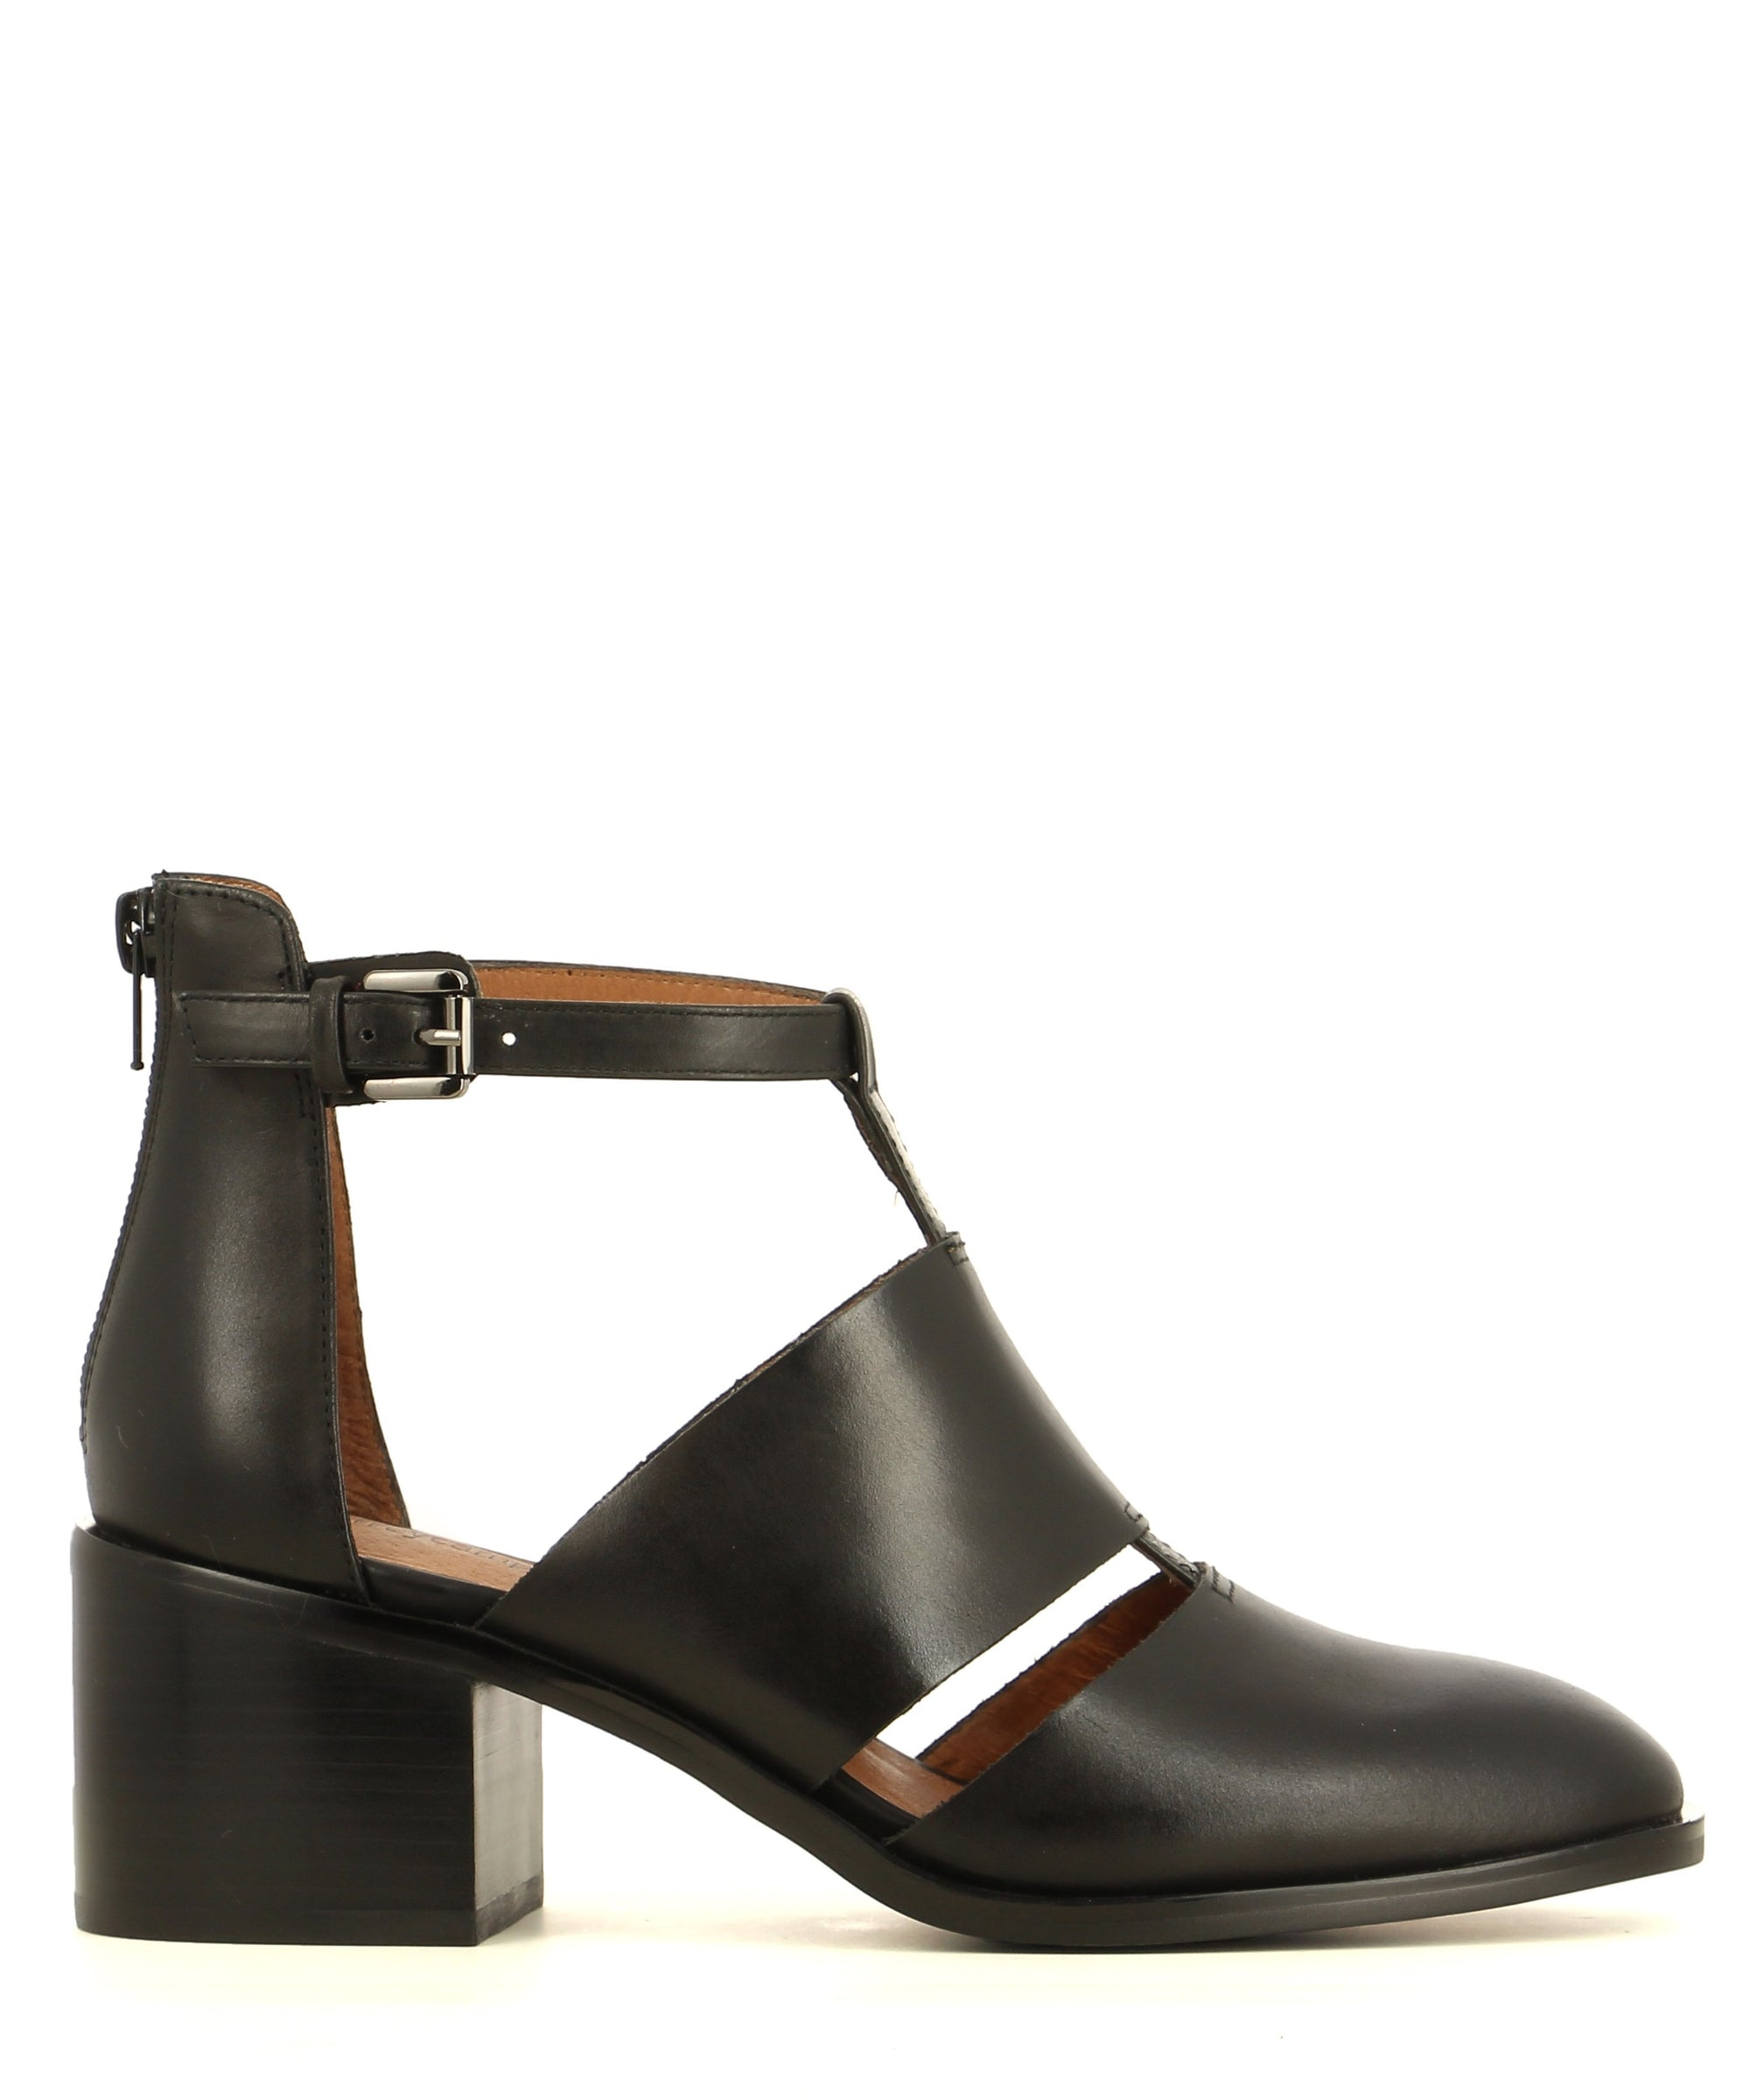 Caged black leather ankle boot with a zipper fastening and an almond toe.